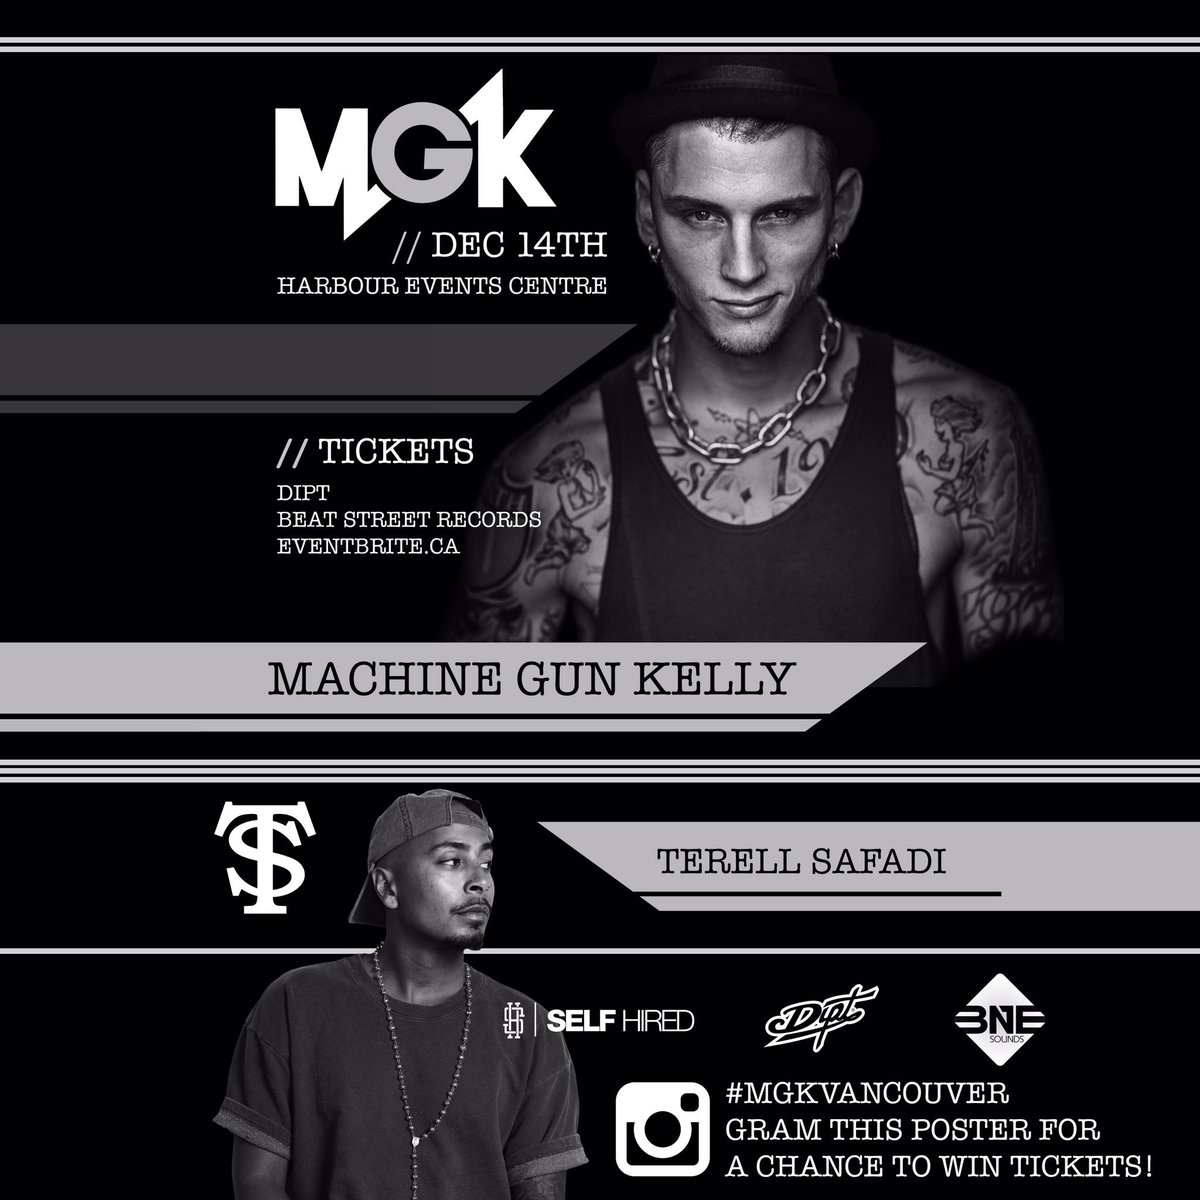 Contest: Retweet for a chance to win tickets to MGK in Vancouver Dec 14th w/ @TerellSafadi https://t.co/MBSNMrLsCh